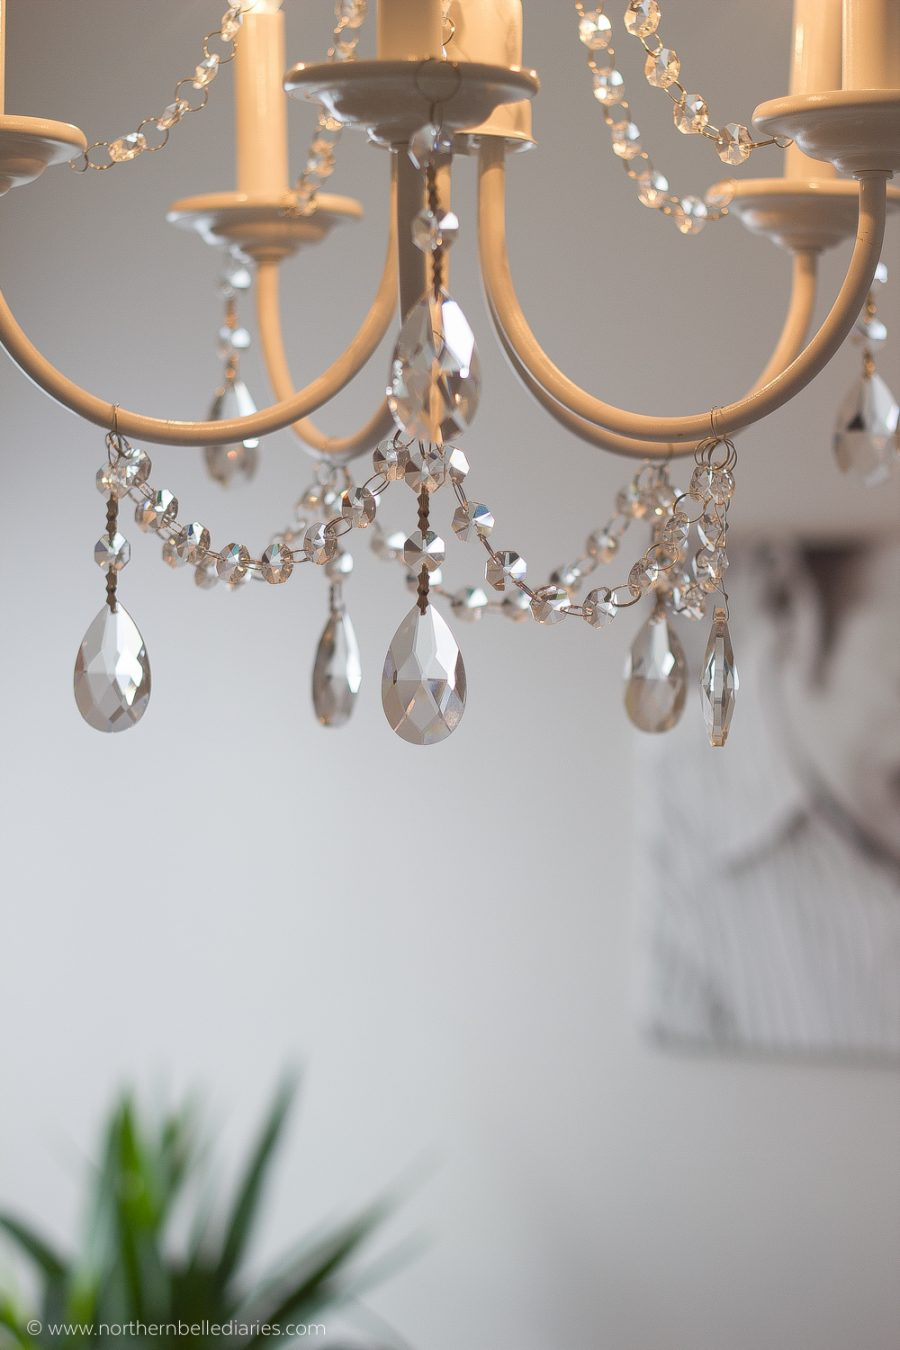 You can make your own DIY crystal chandelier. This site shows you how! #easydiy #diy #decor